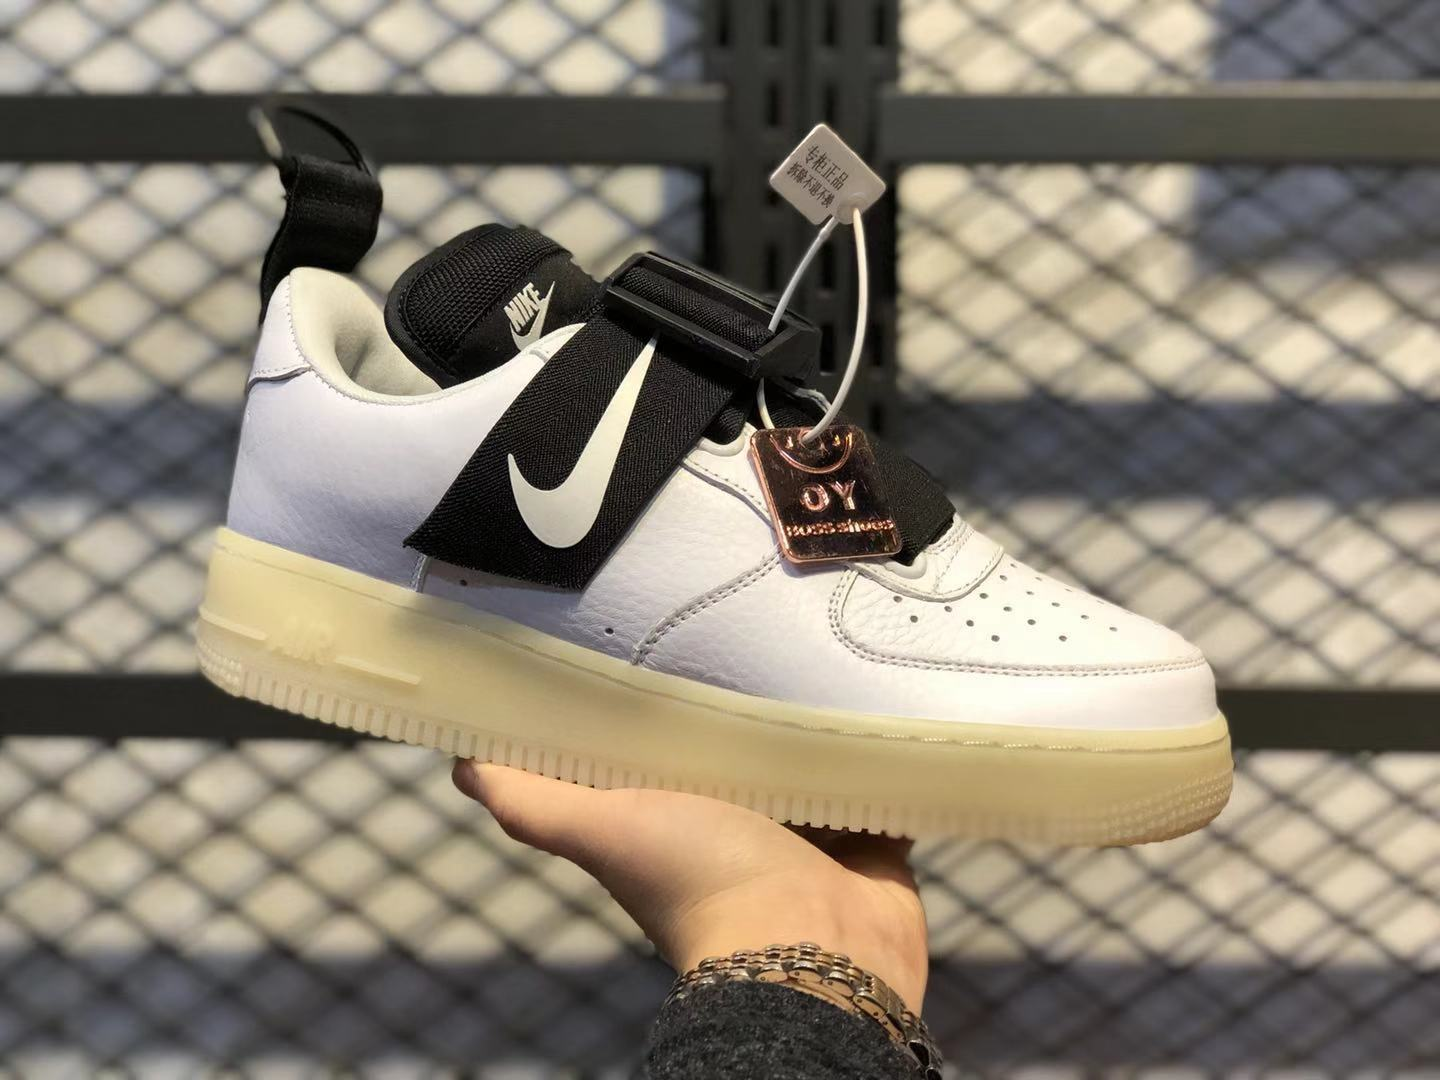 Nike Air Force 1 Low Utility White Black AV6247-100 For Online Sale